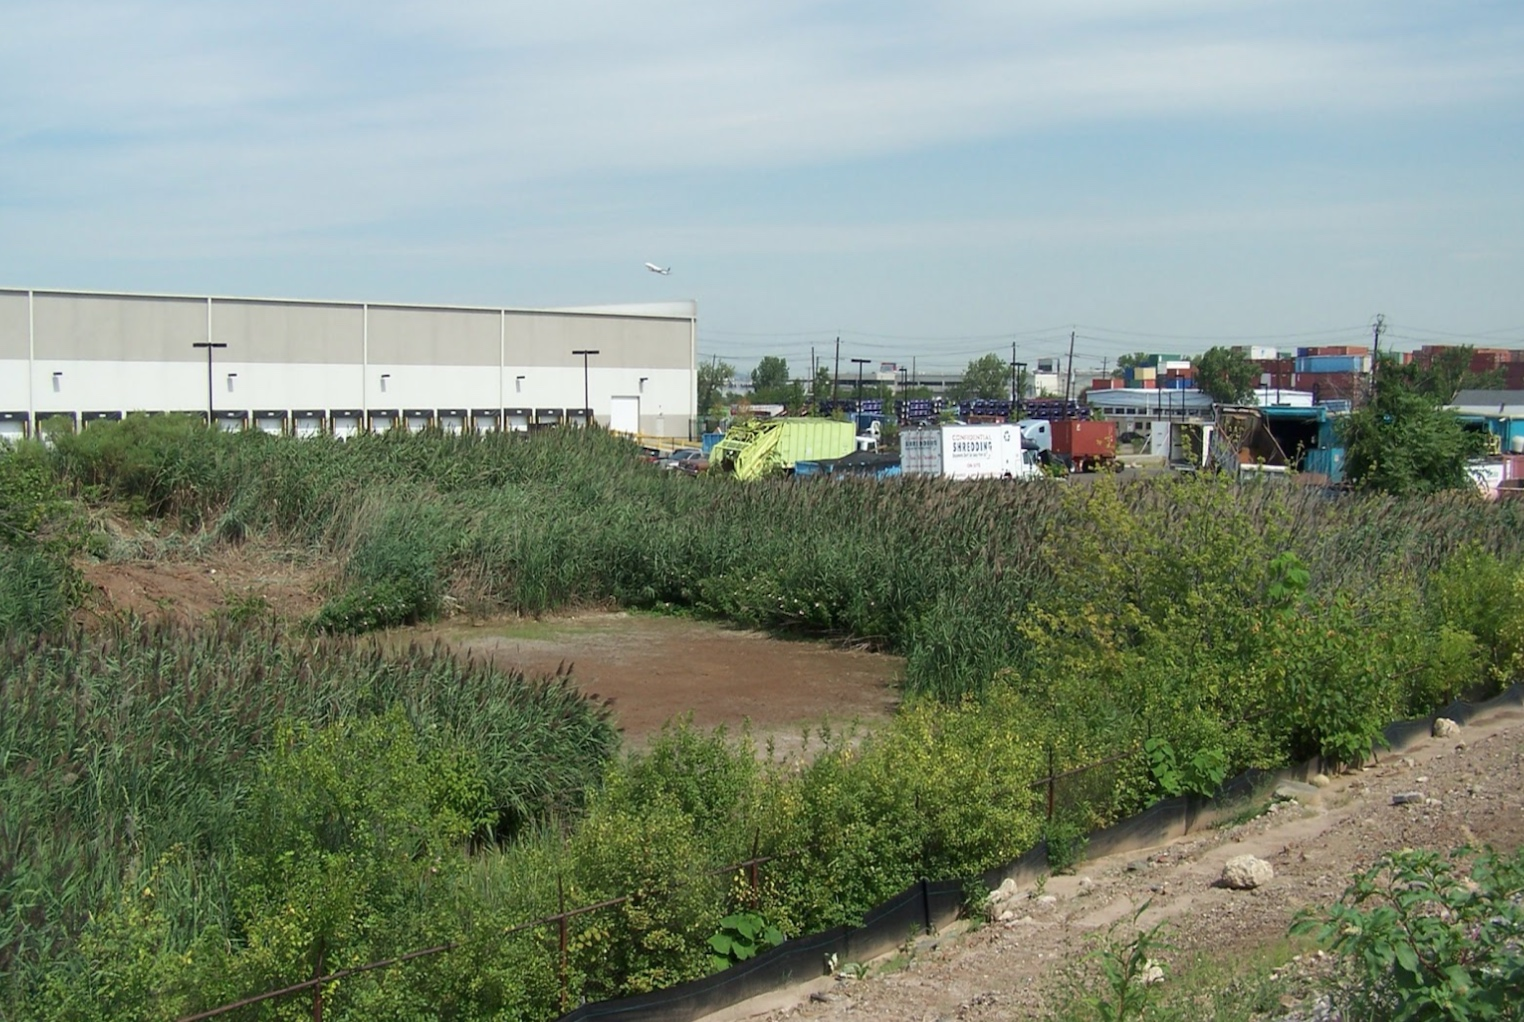 The 18-acre site in Elizabeth, NJ had huge potential but was significantly degraded and was being vastly underutilized.